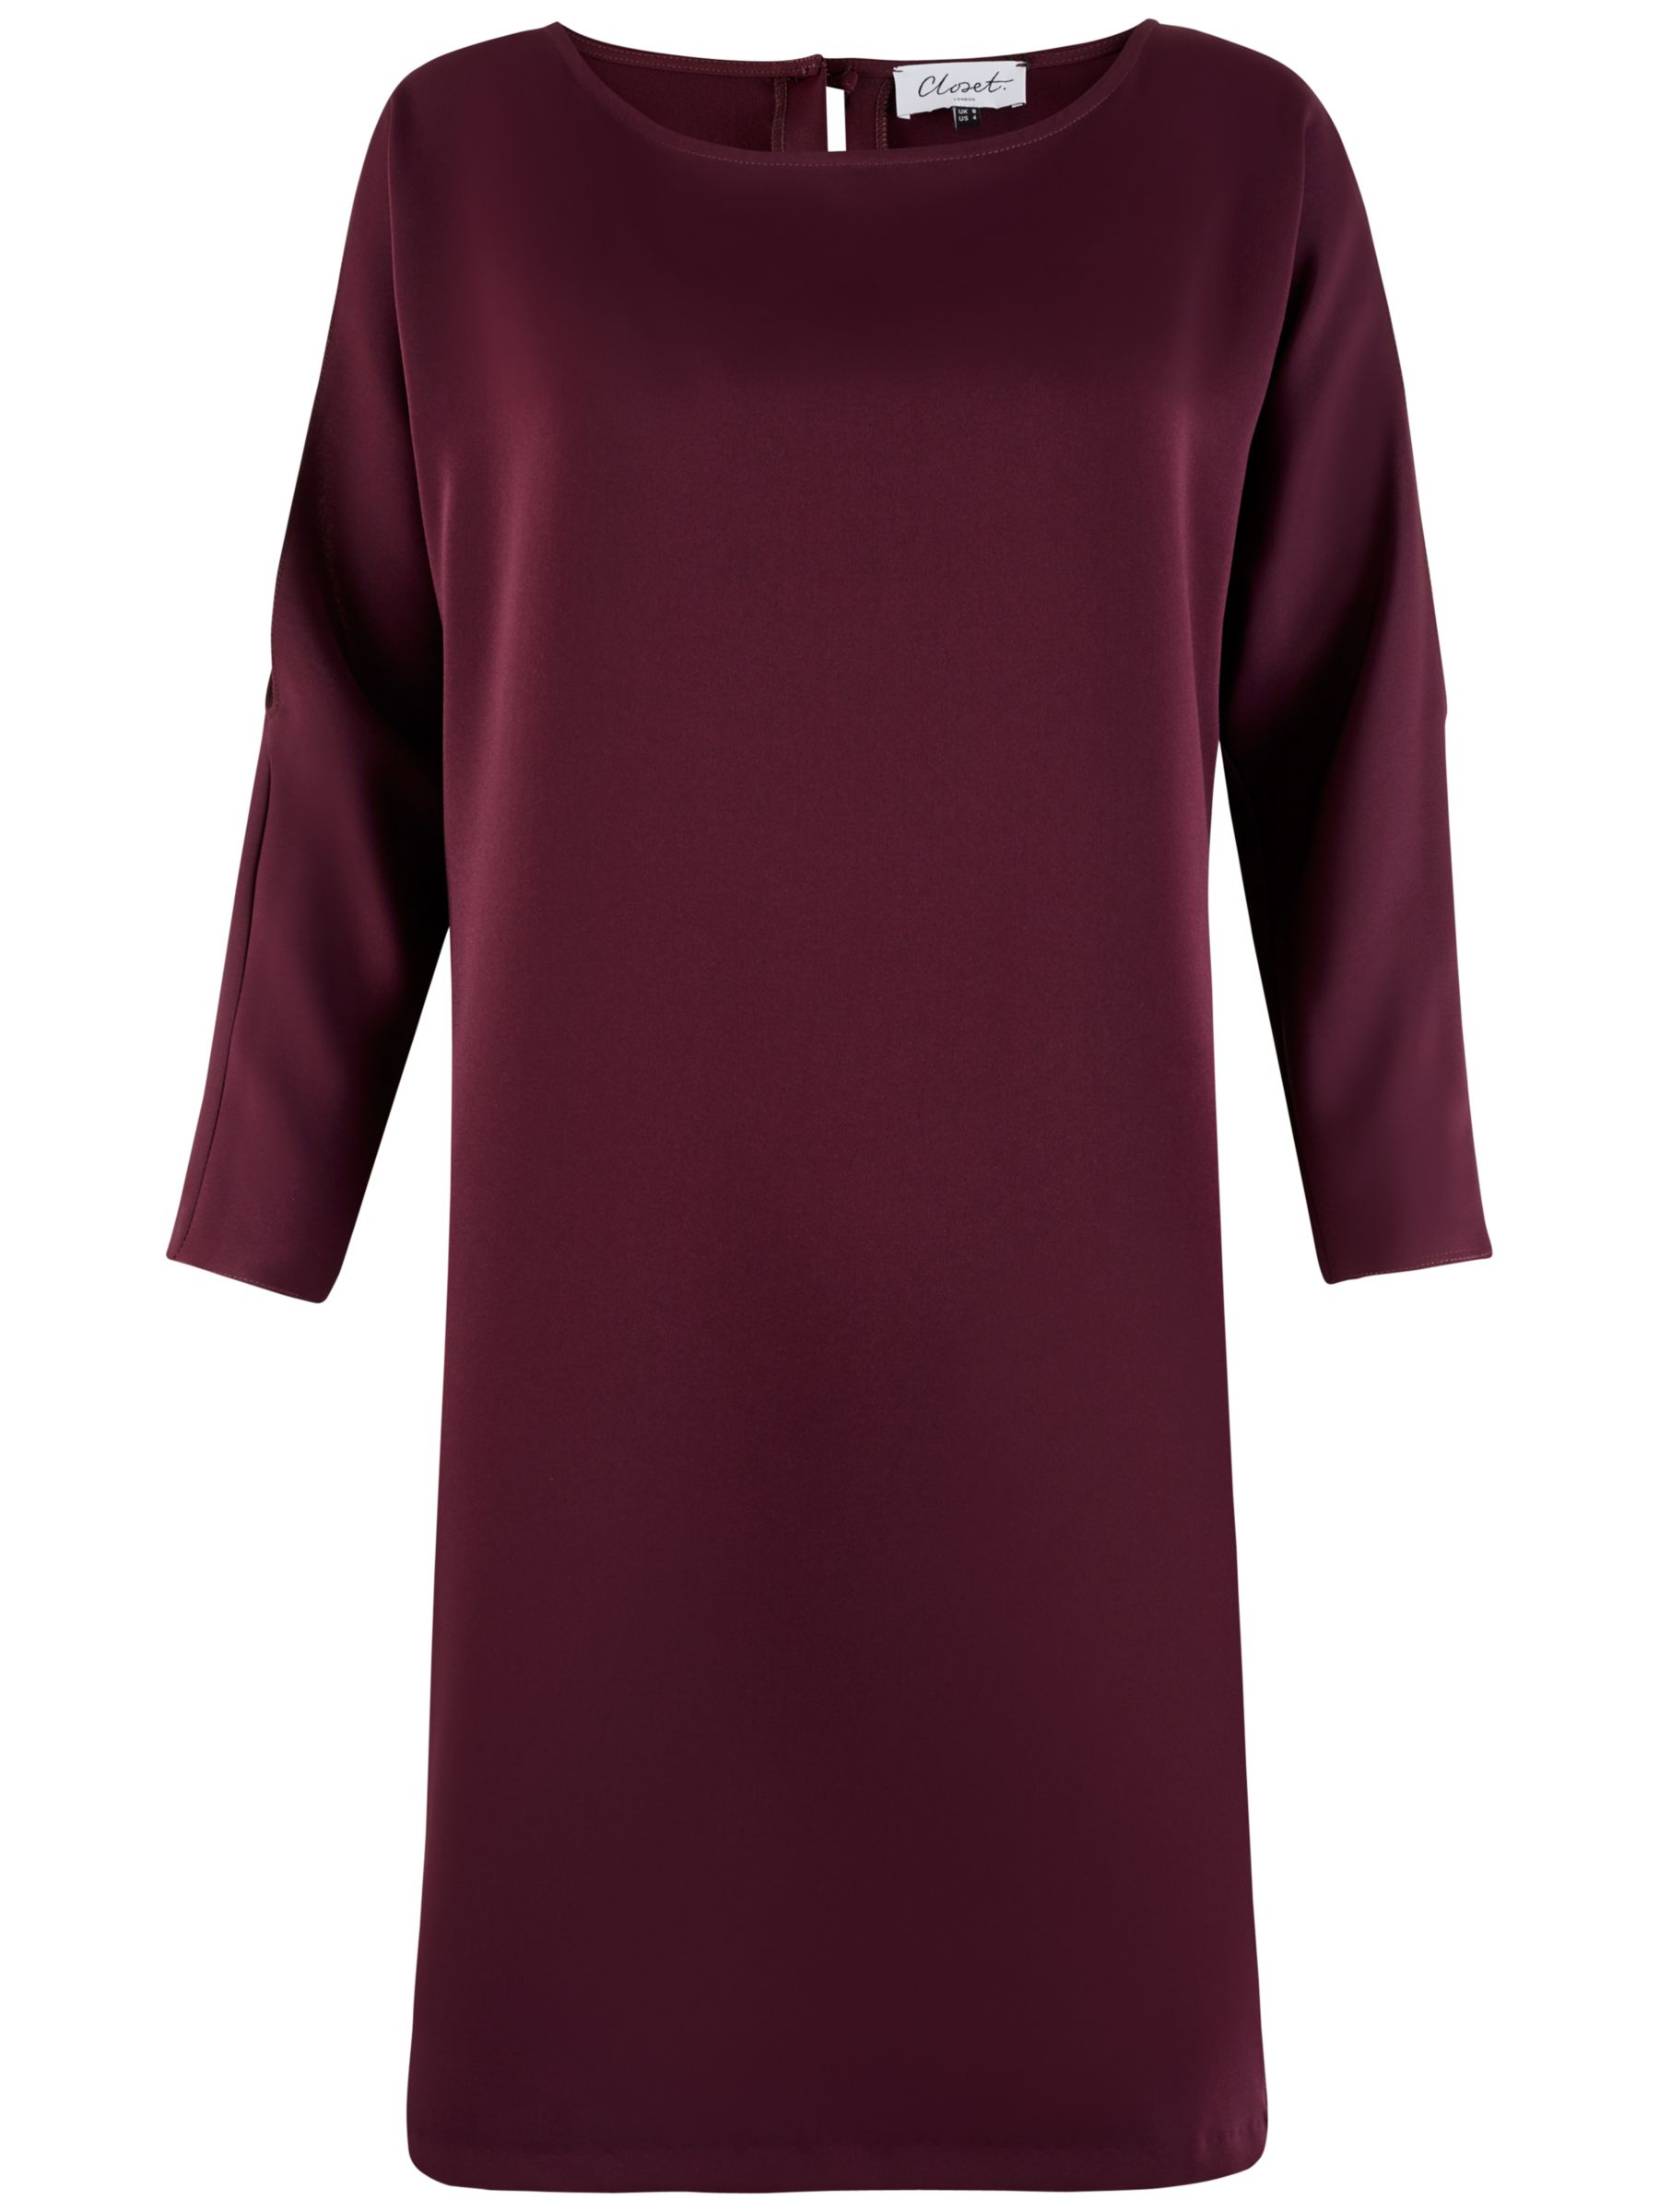 Closet Closet Cold Shoulder Tunic Dress, Plum